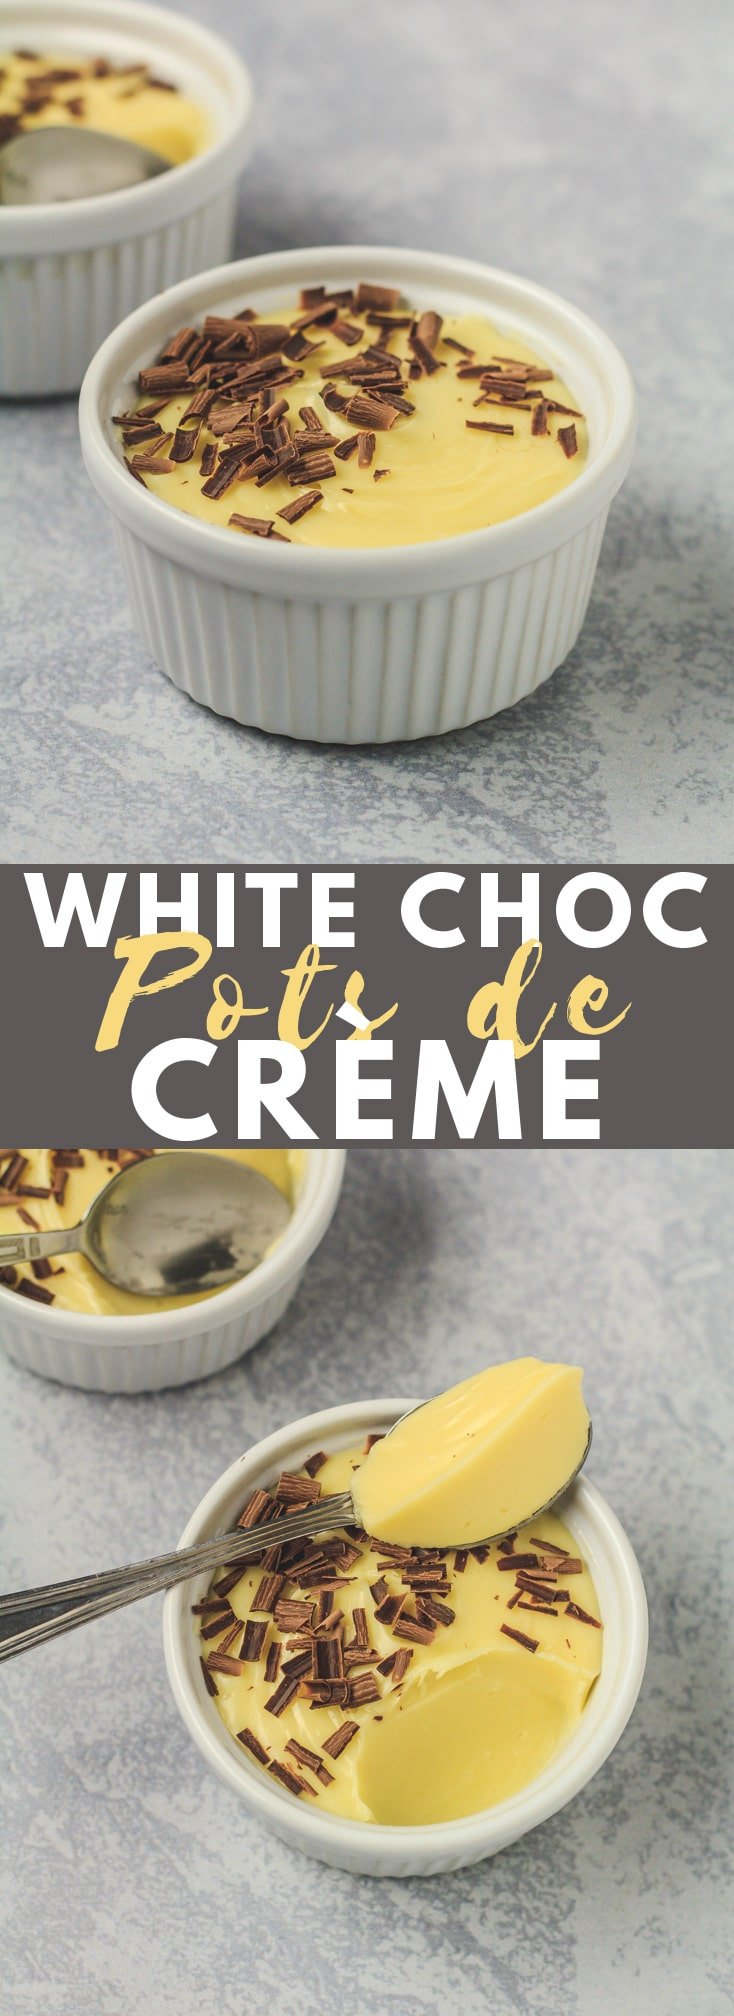 Easy White Chocolate Pots de Crème